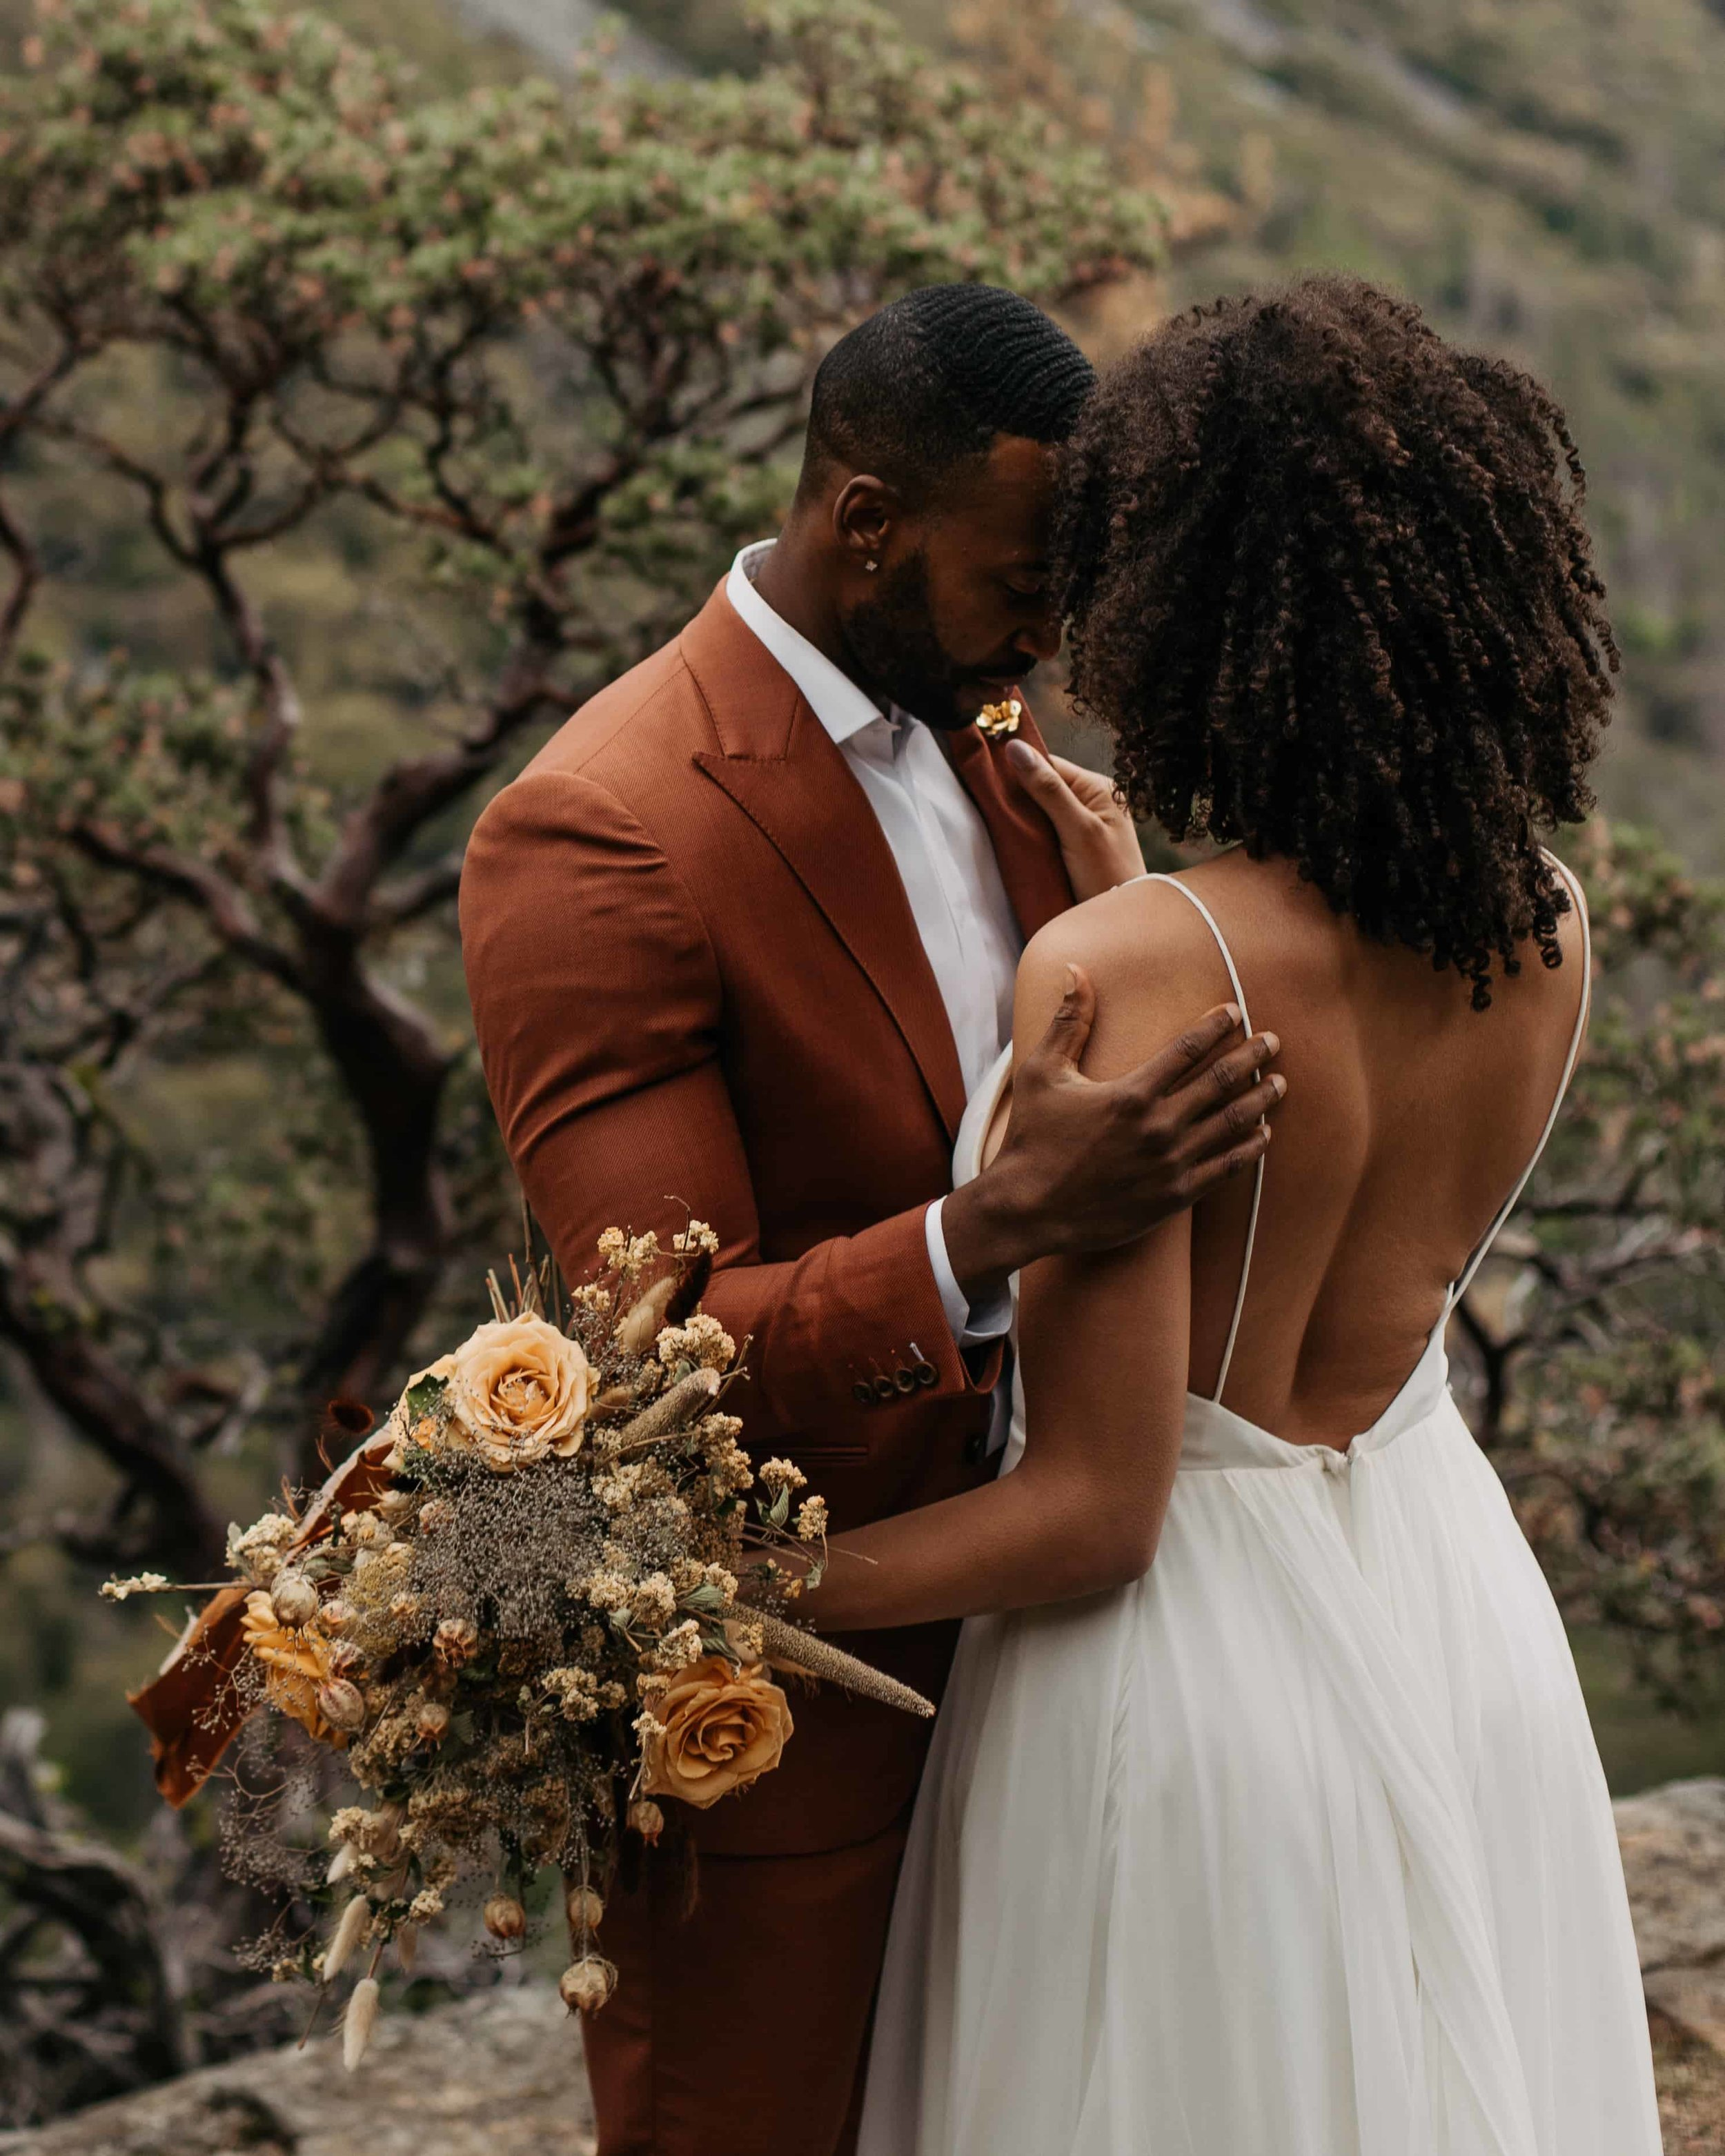 elopement couple giving us 5 reasons why we should elope based off of how they look at each other